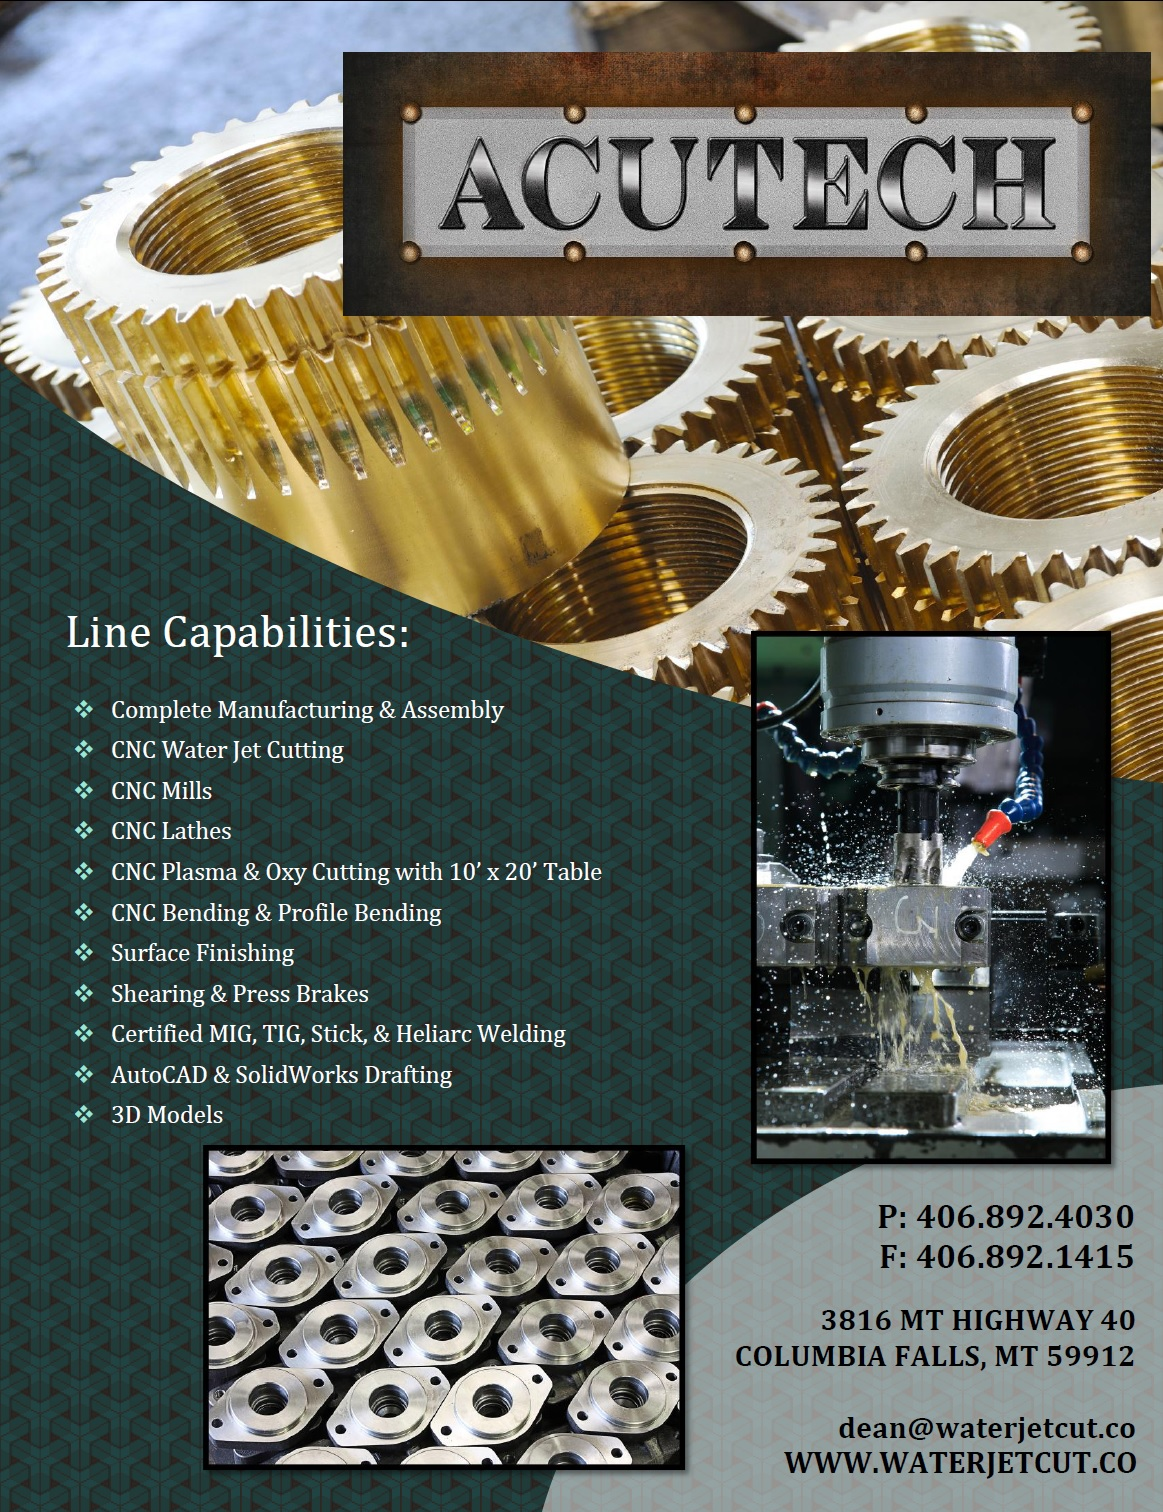 Acutech Metal Works Machining Line Card Acutech Metal Works